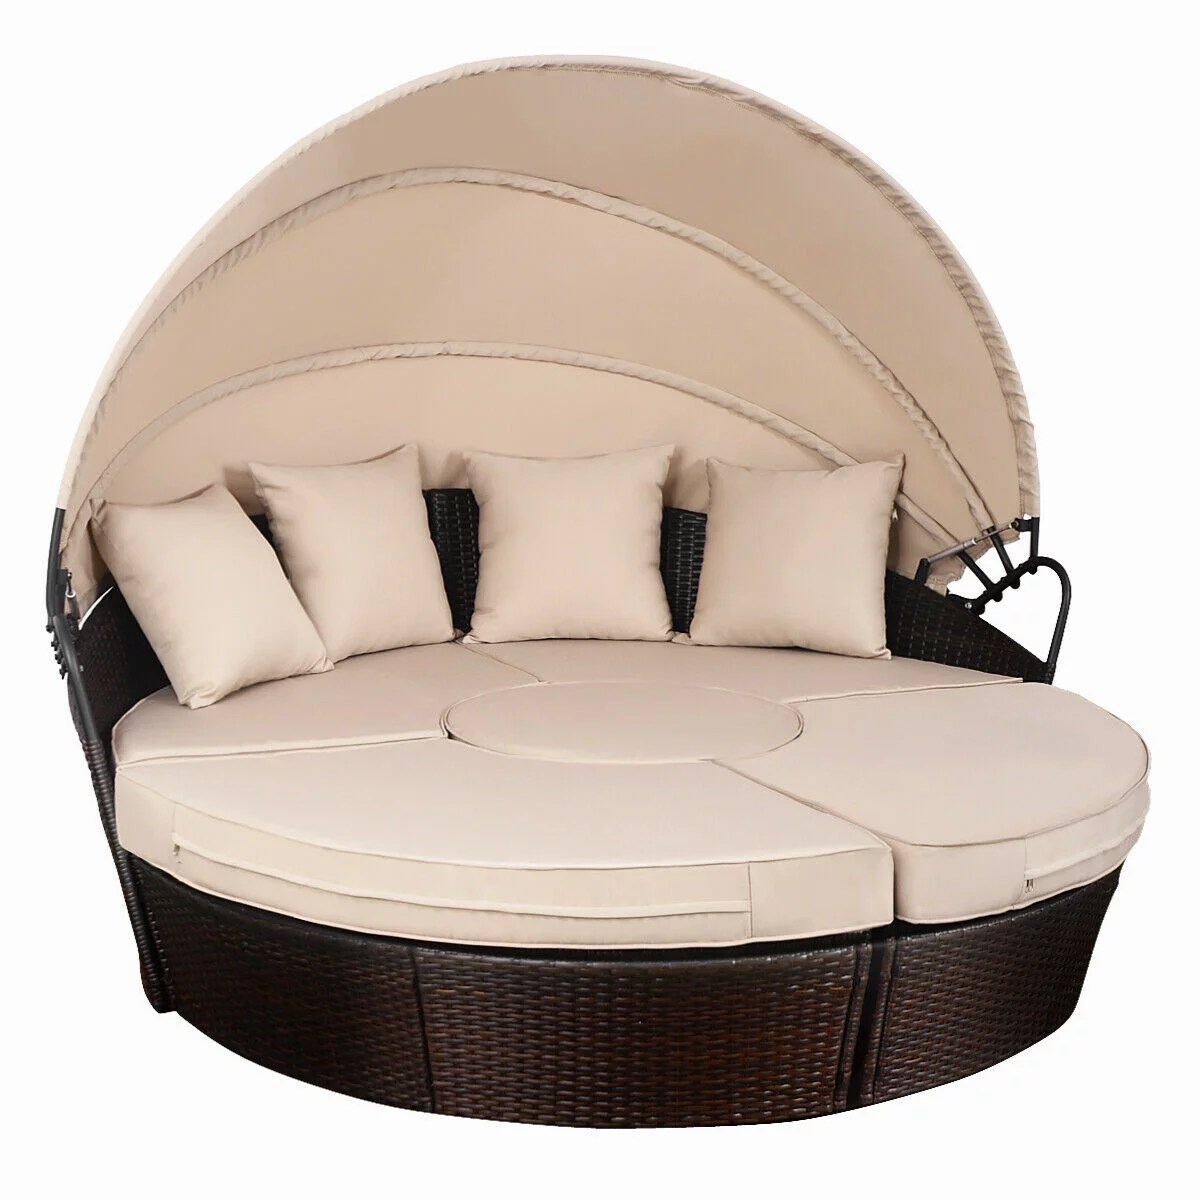 Sofa Rattan Costway Outdoor Mix Brown Rattan Patio Sofa Furniture Round Retractable Canopy Daybed